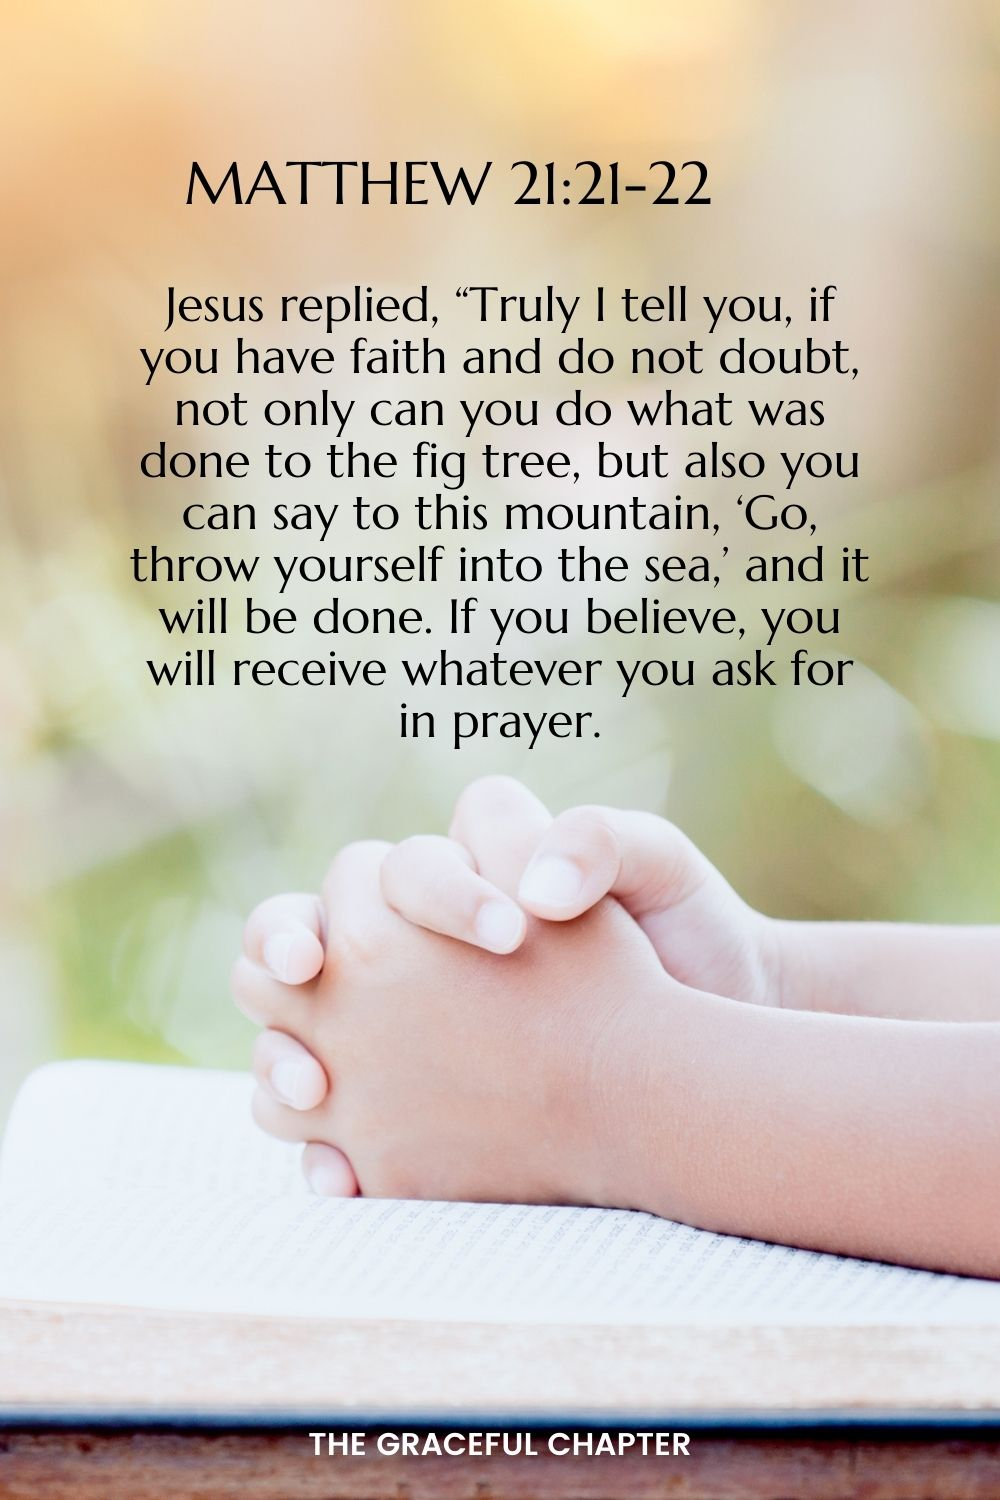 """Jesus replied, """"Truly I tell you, if you have faith and do not doubt, not only can you do what was done to the fig tree, but also you can say to this mountain, 'Go, throw yourself into the sea,' and it will be done. If you believe, you will receive whatever you ask for in prayer."""" Matthew 21:21-22"""